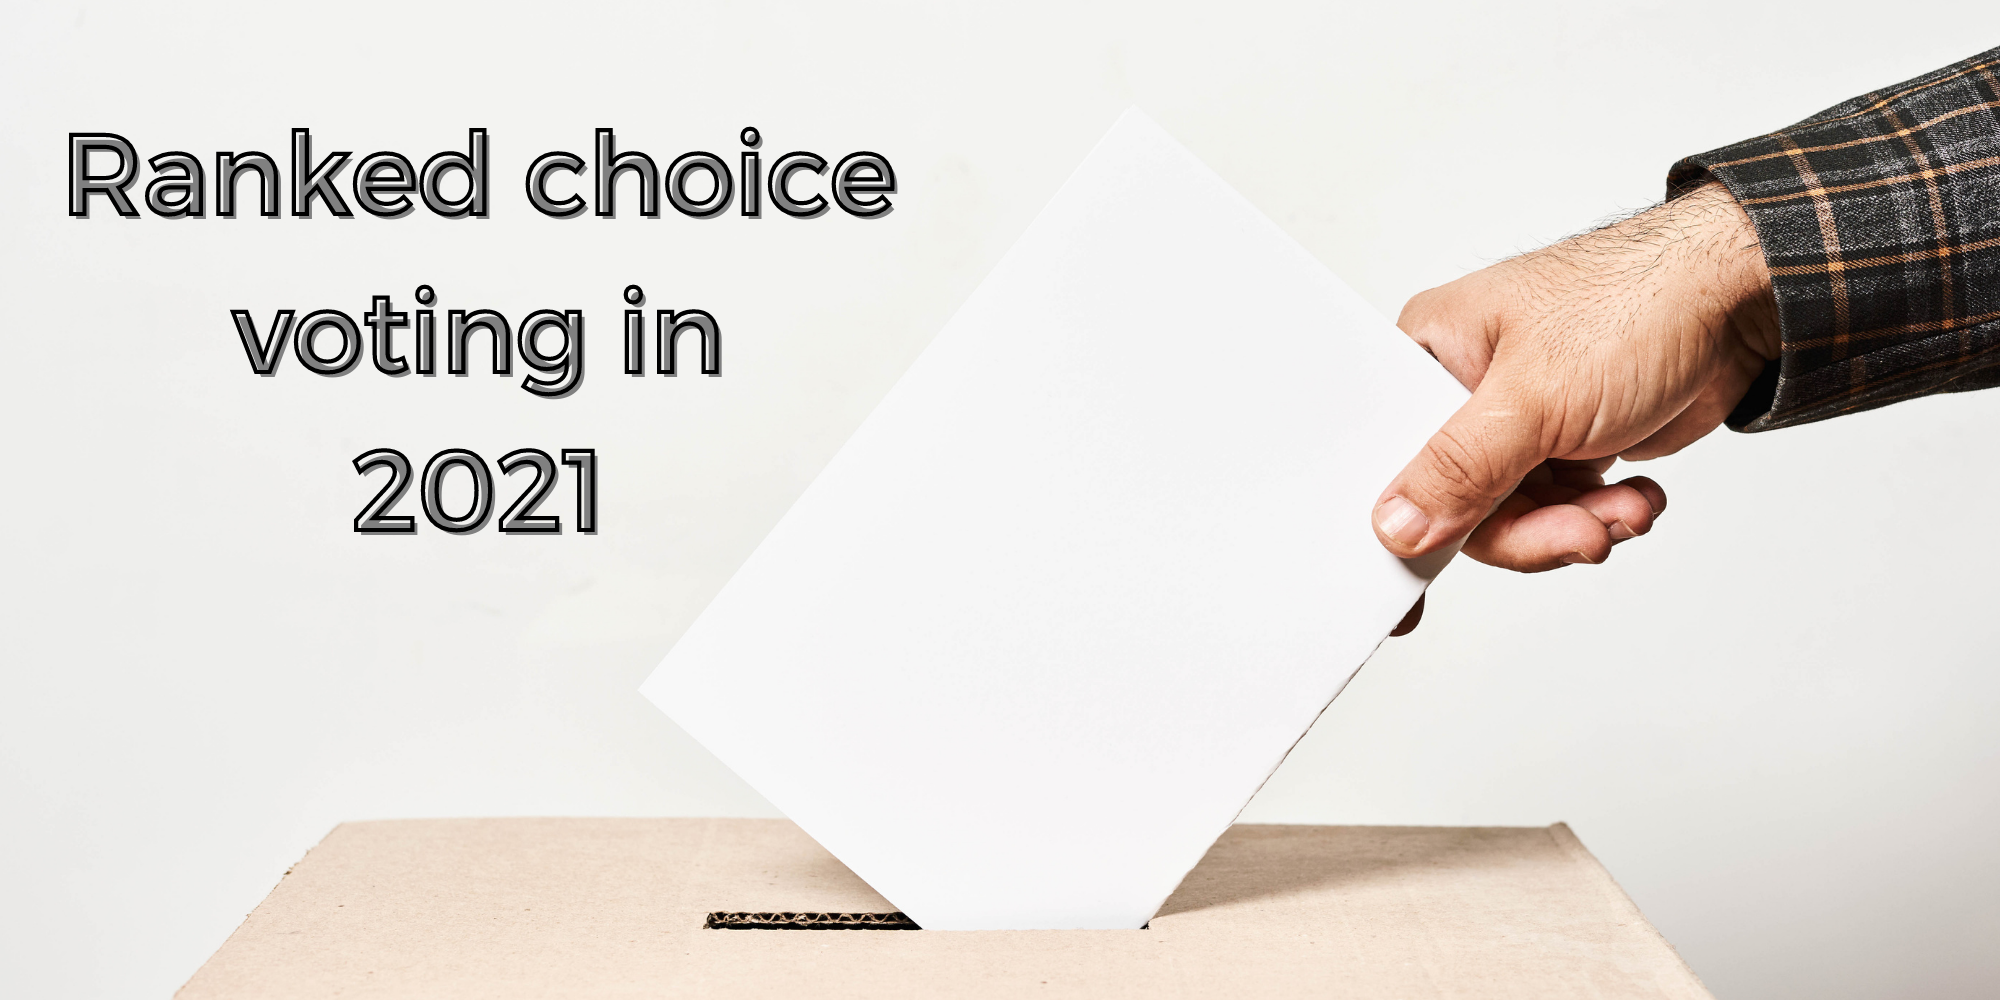 Ranked choice voting elections to watch in 2021